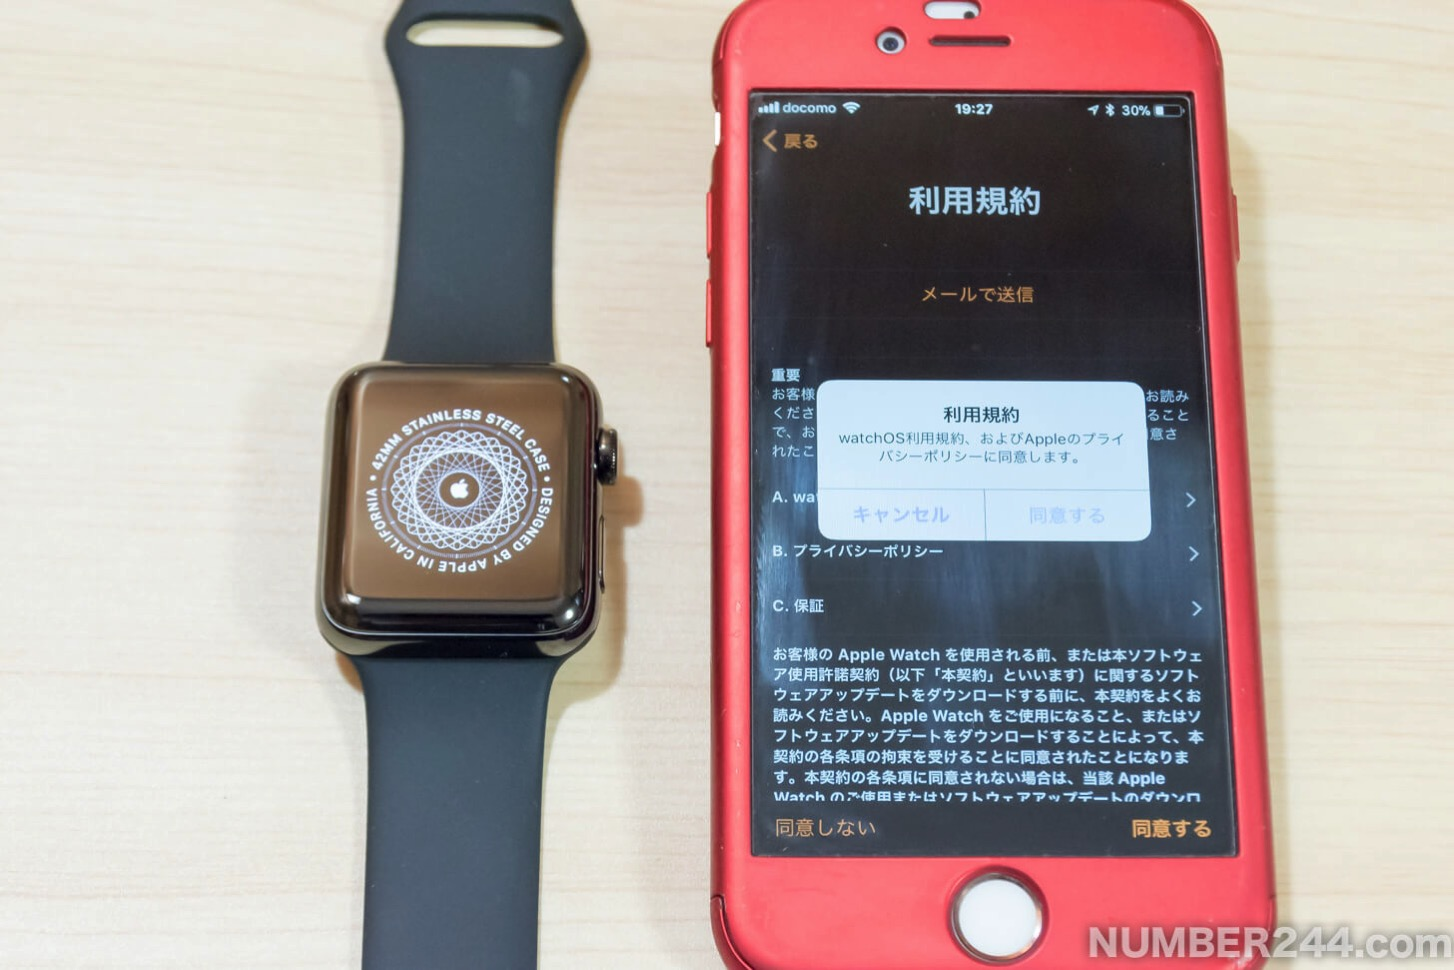 Initial setting of Apple Watch 7